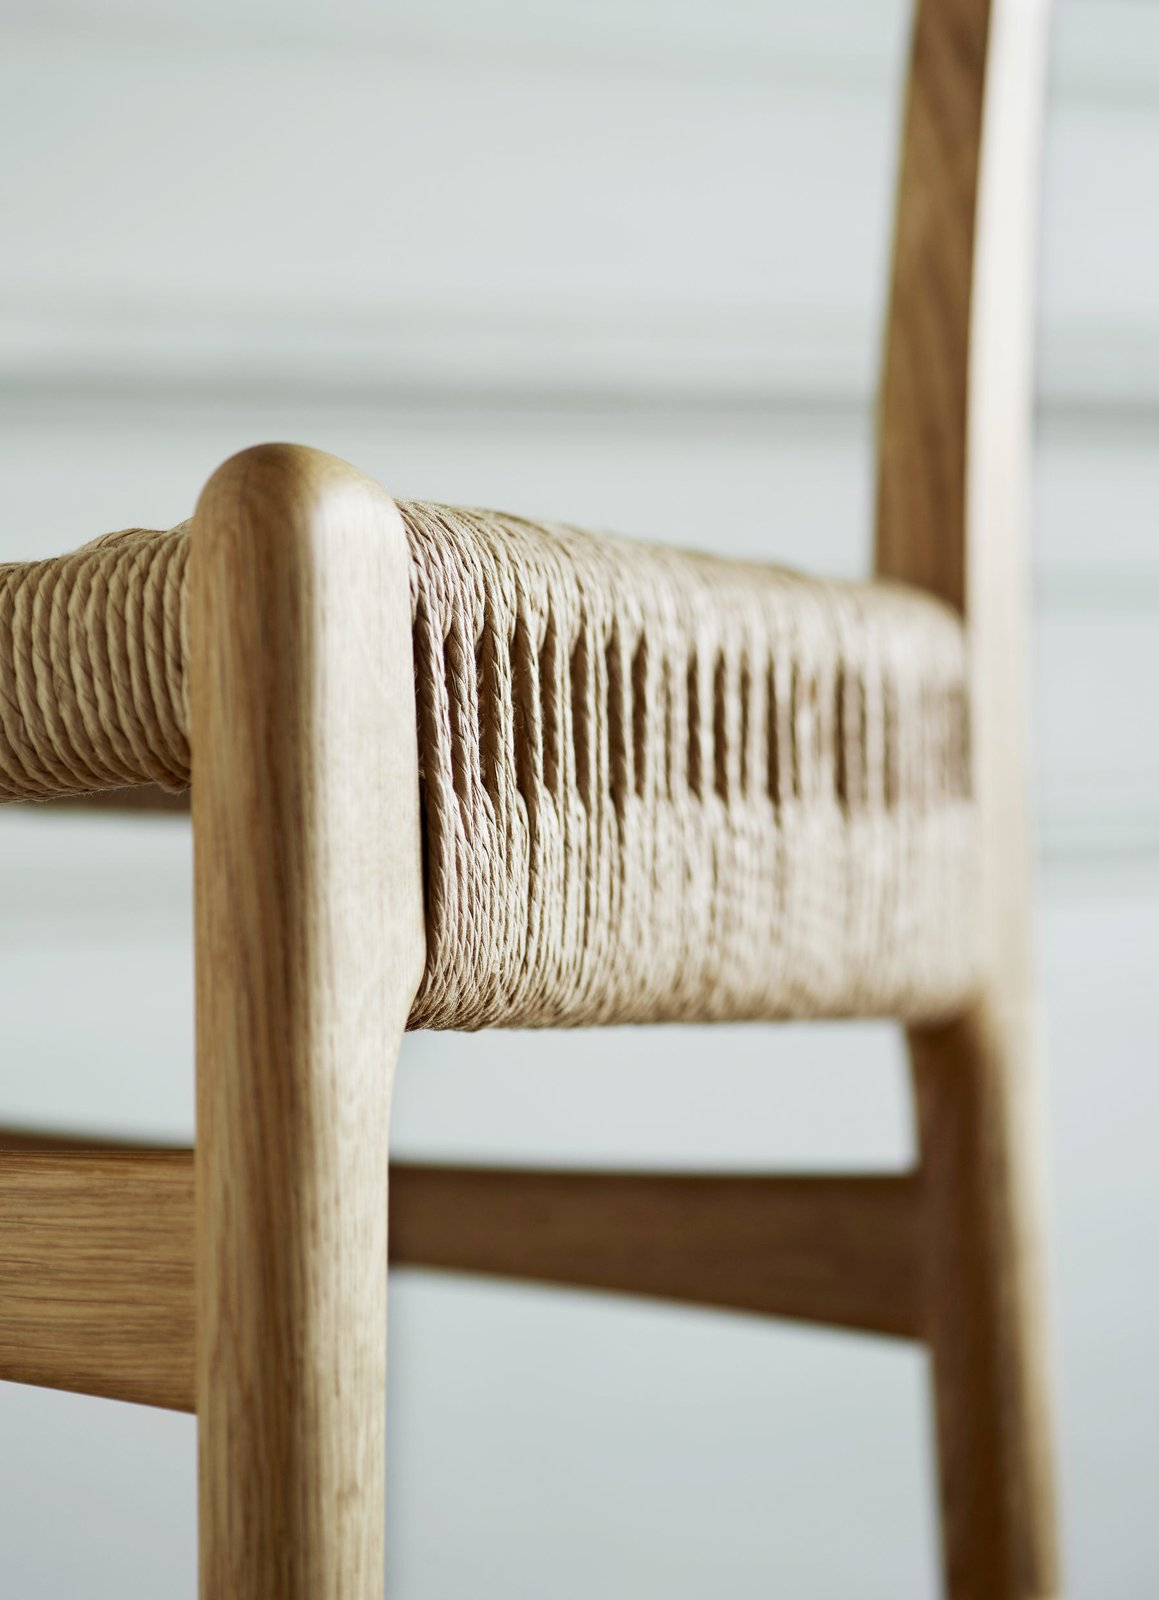 Photo 7 of 7 in CH23 And CH22 Chairs By Hans J. Wegner